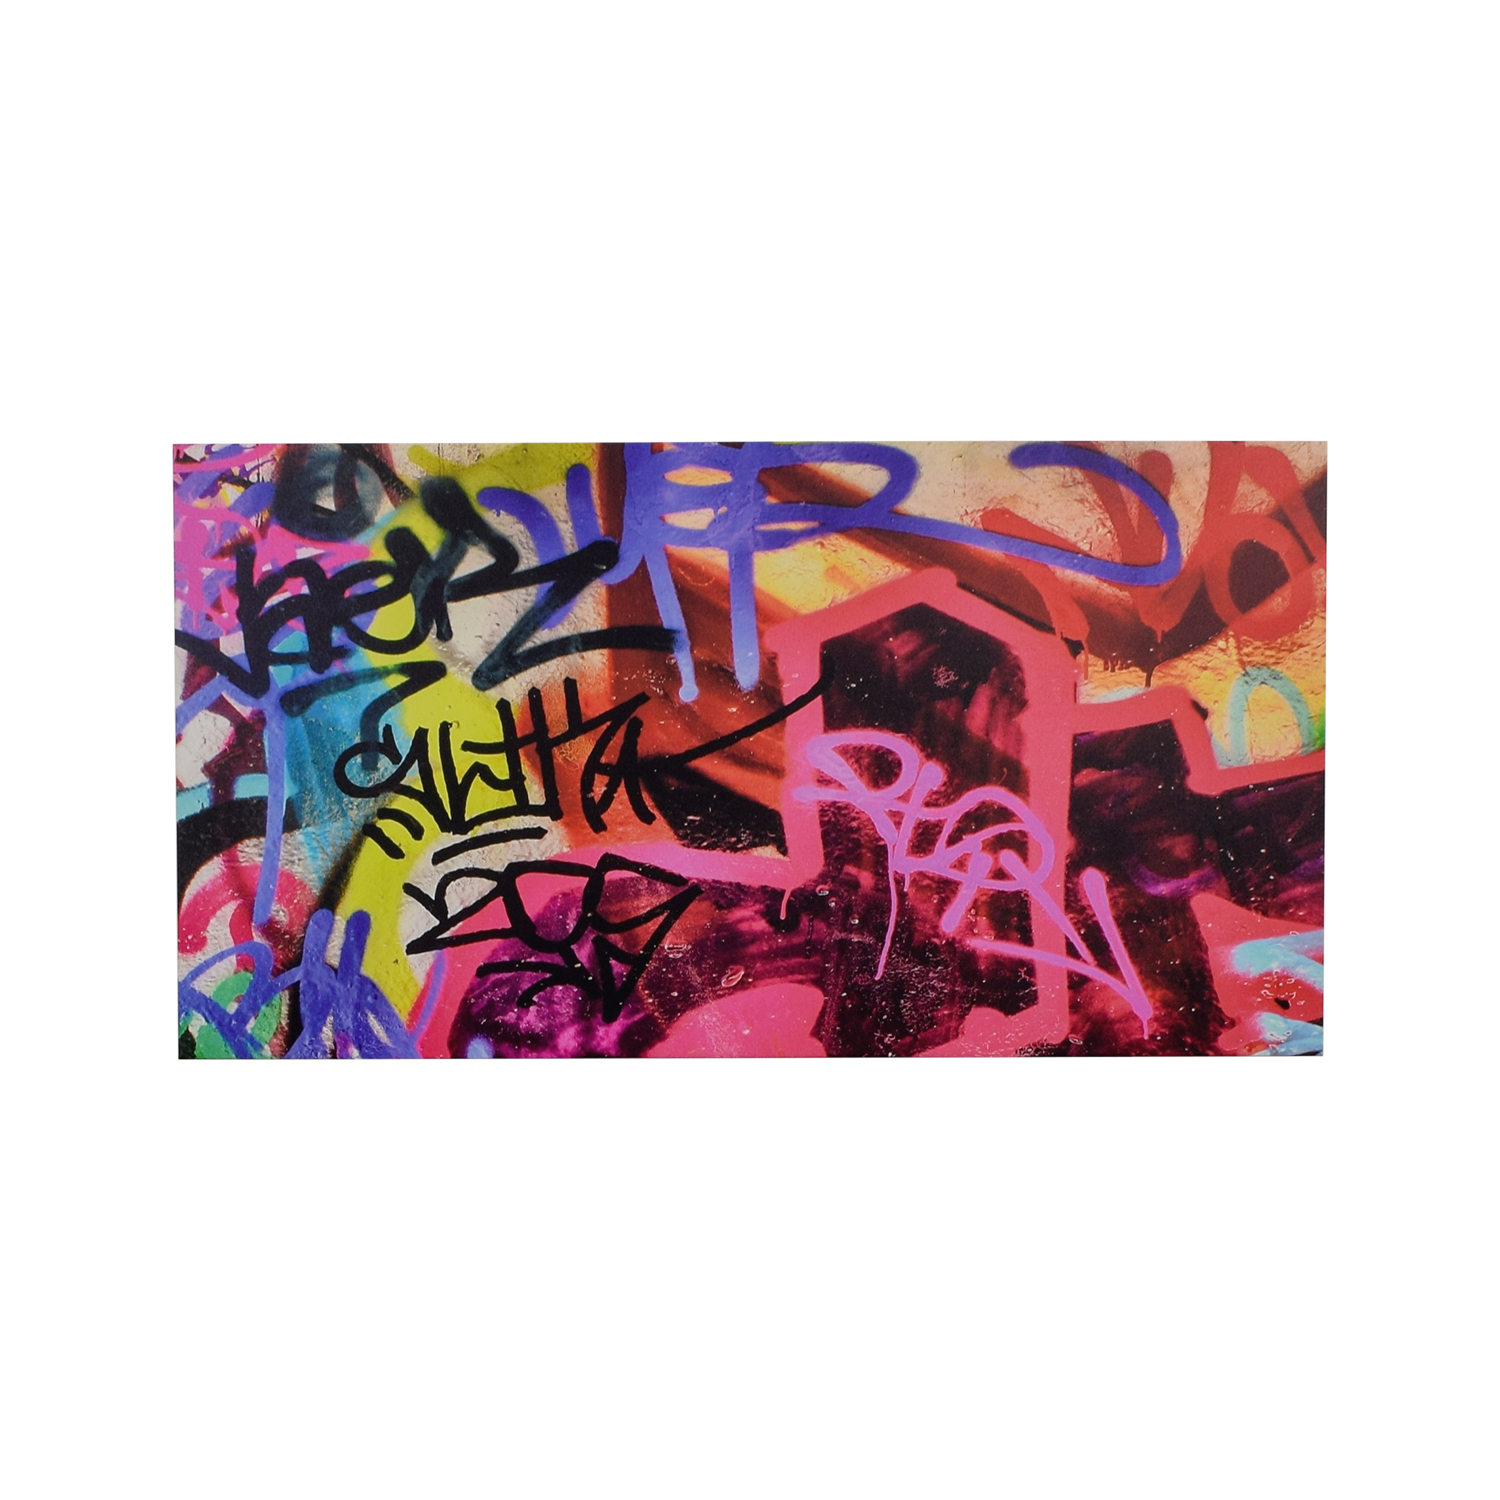 Graffiti Wall Art Print On Canvas on sale